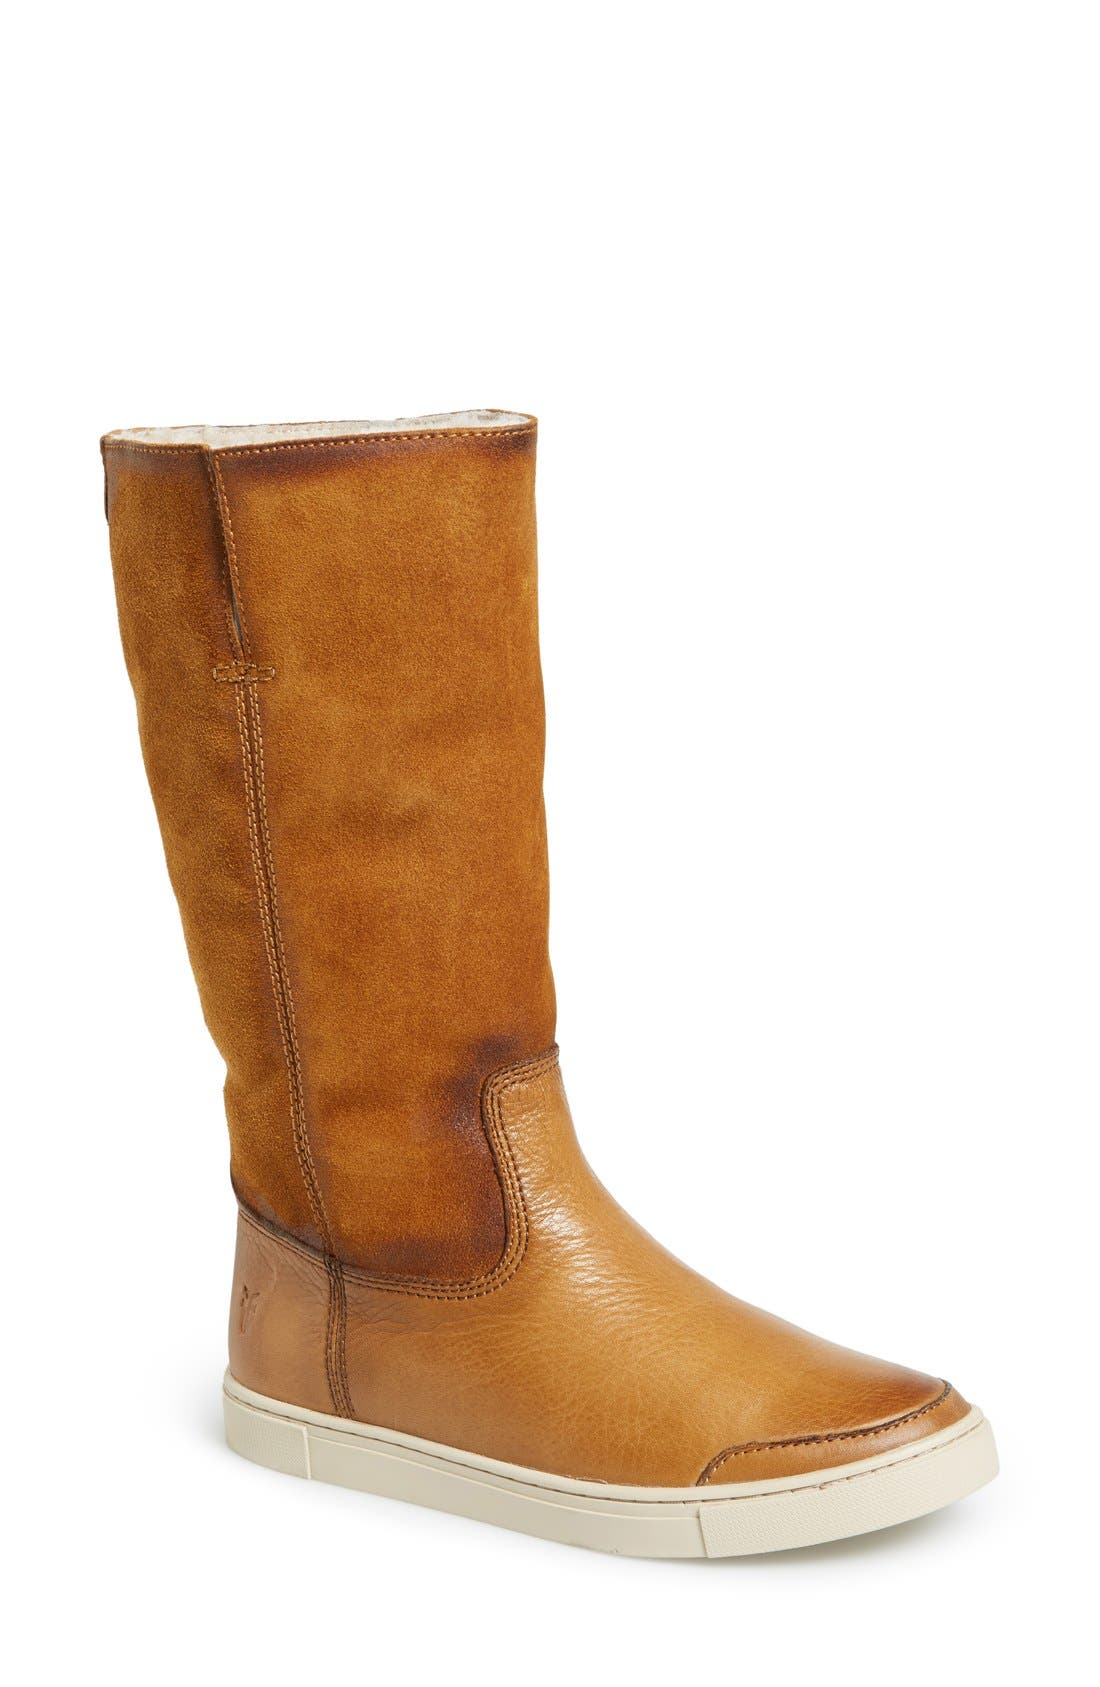 Alternate Image 1 Selected - Frye 'Gemma' Tall Genuine Shearling Lined Boot (Women)